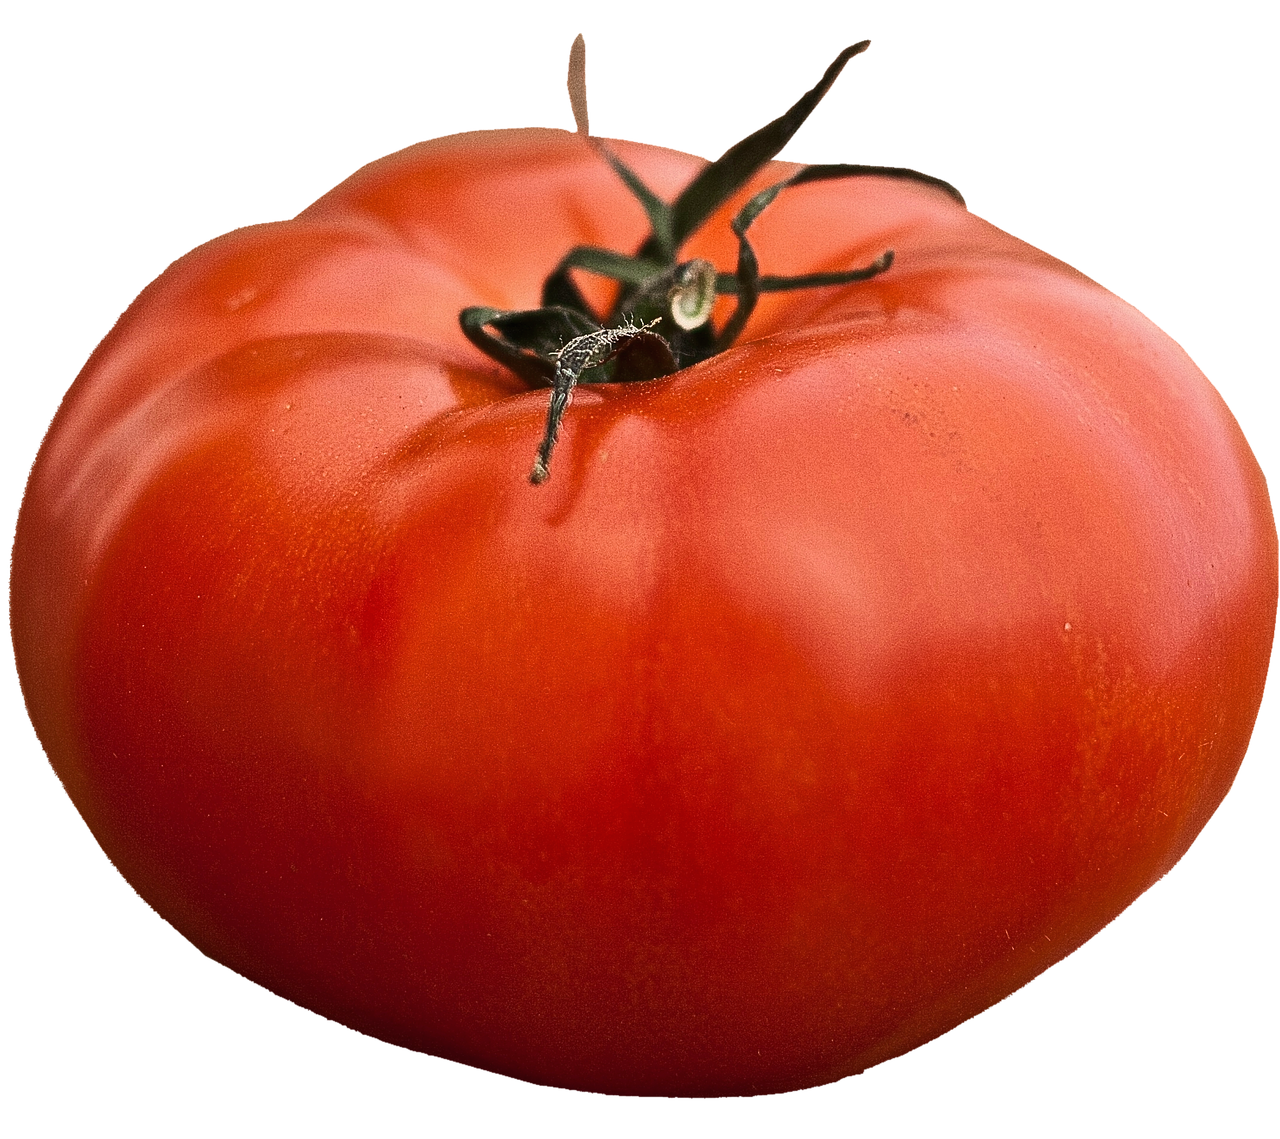 ALL-AMERICAN GIANT BEEFSTEAK TOMATO 100 SEEDS HEIRLOOM NON-GMO OPEN-POLLINATED